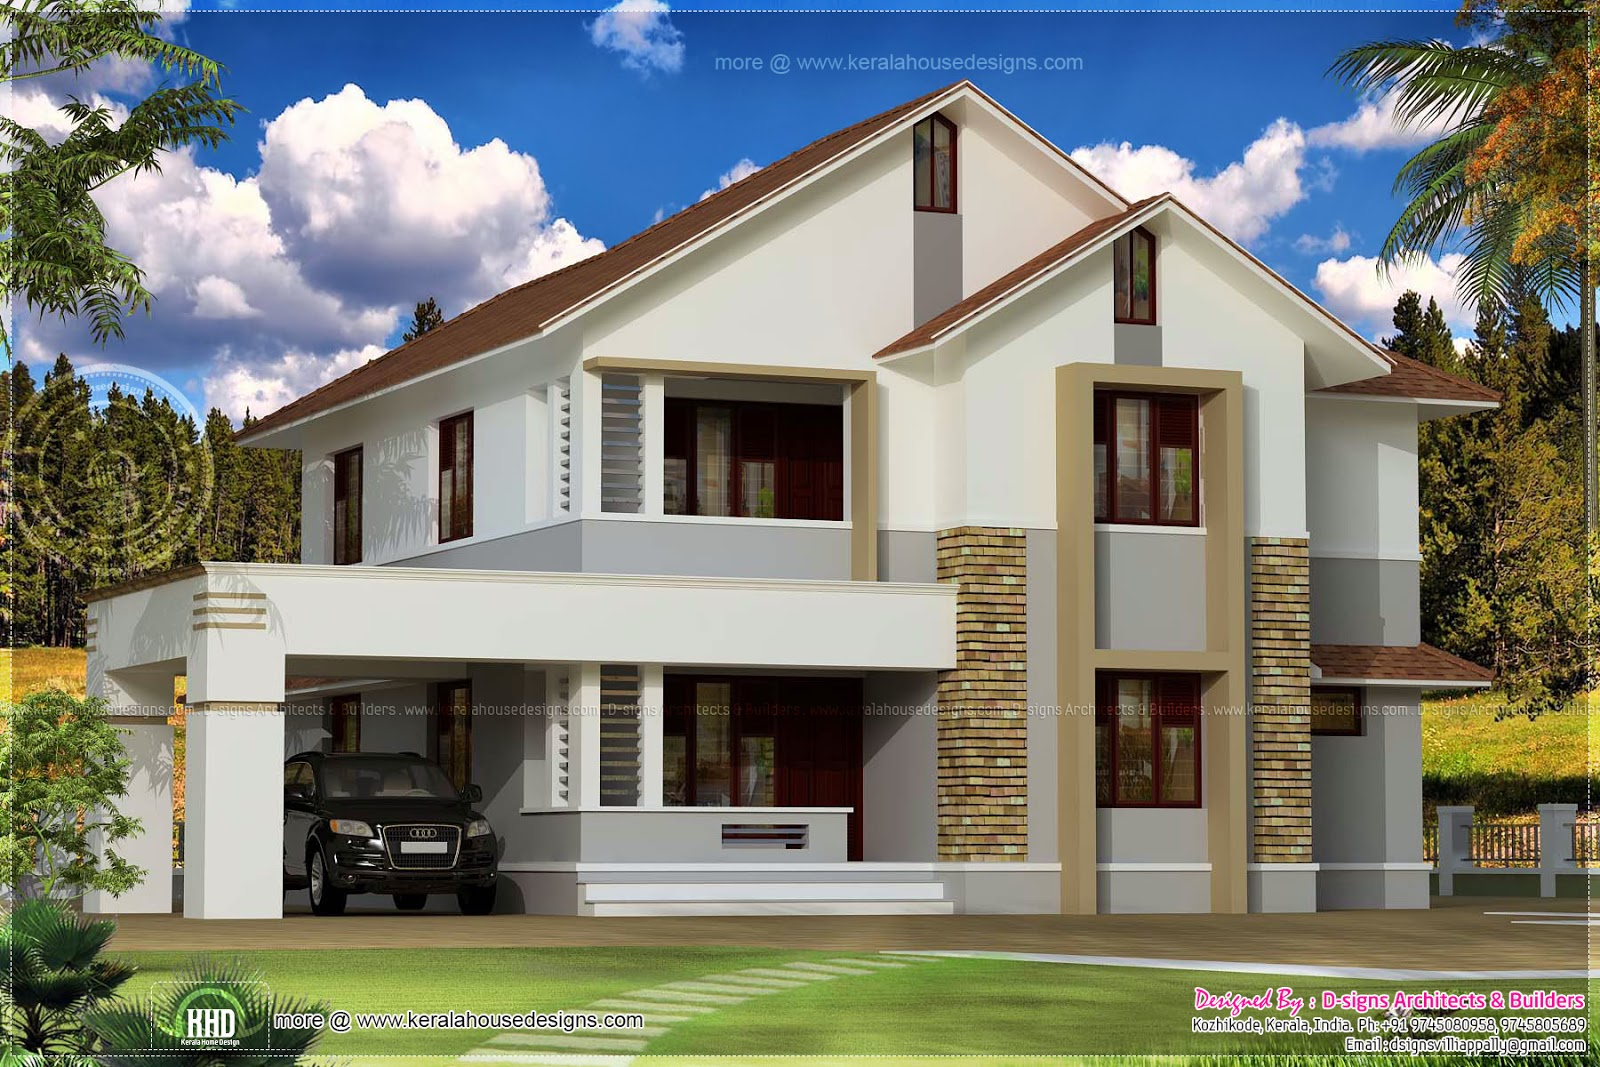 Simple sloping roof house elevation kerala home design for Sloped roof house plans in india